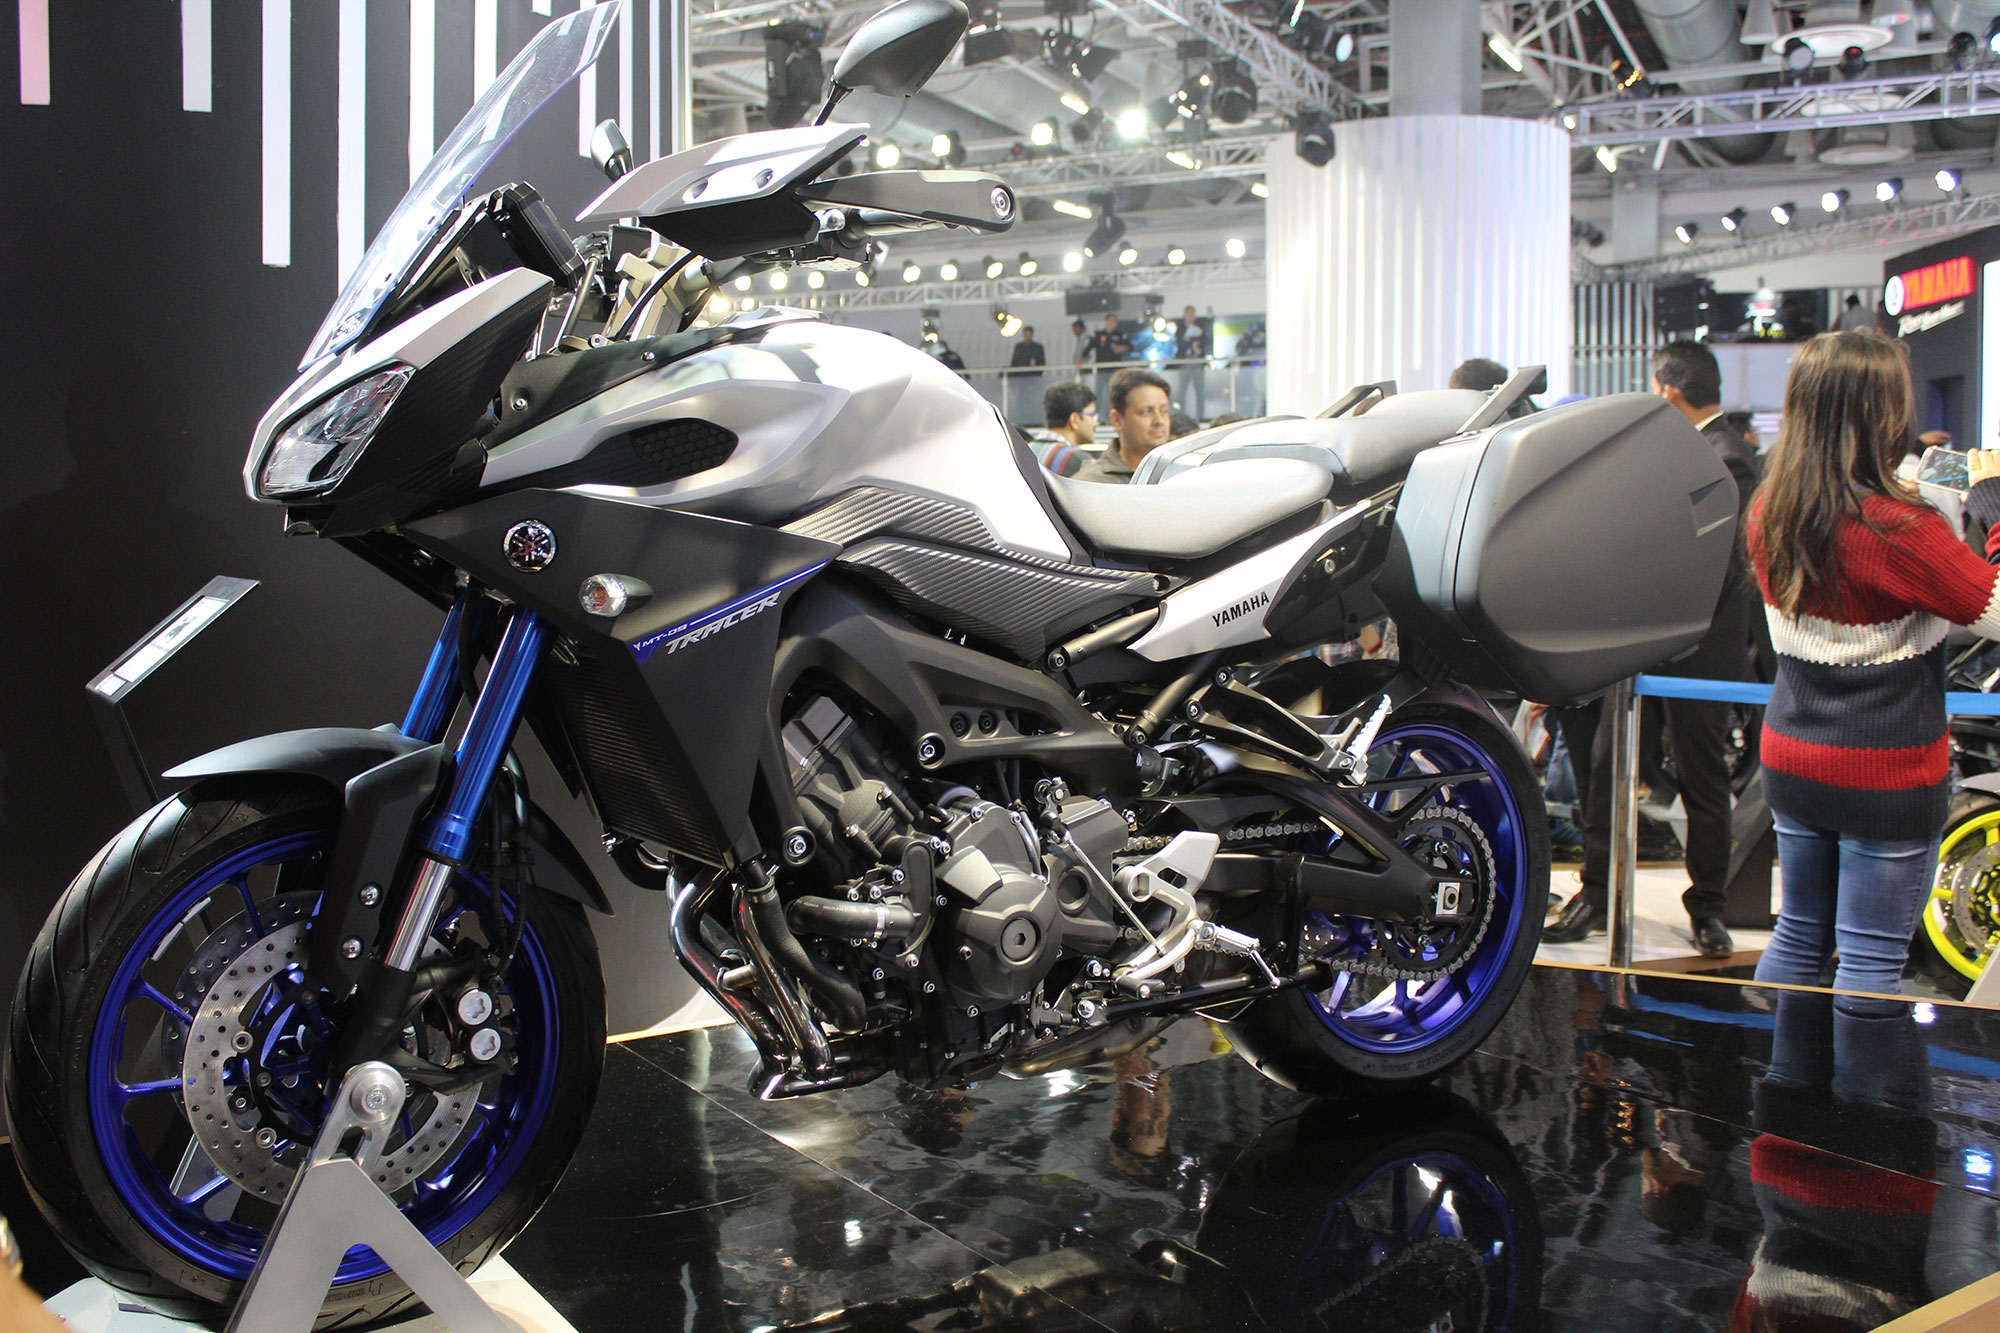 A Quick Glance at the Auto Expo 2018 Brands: Yamaha